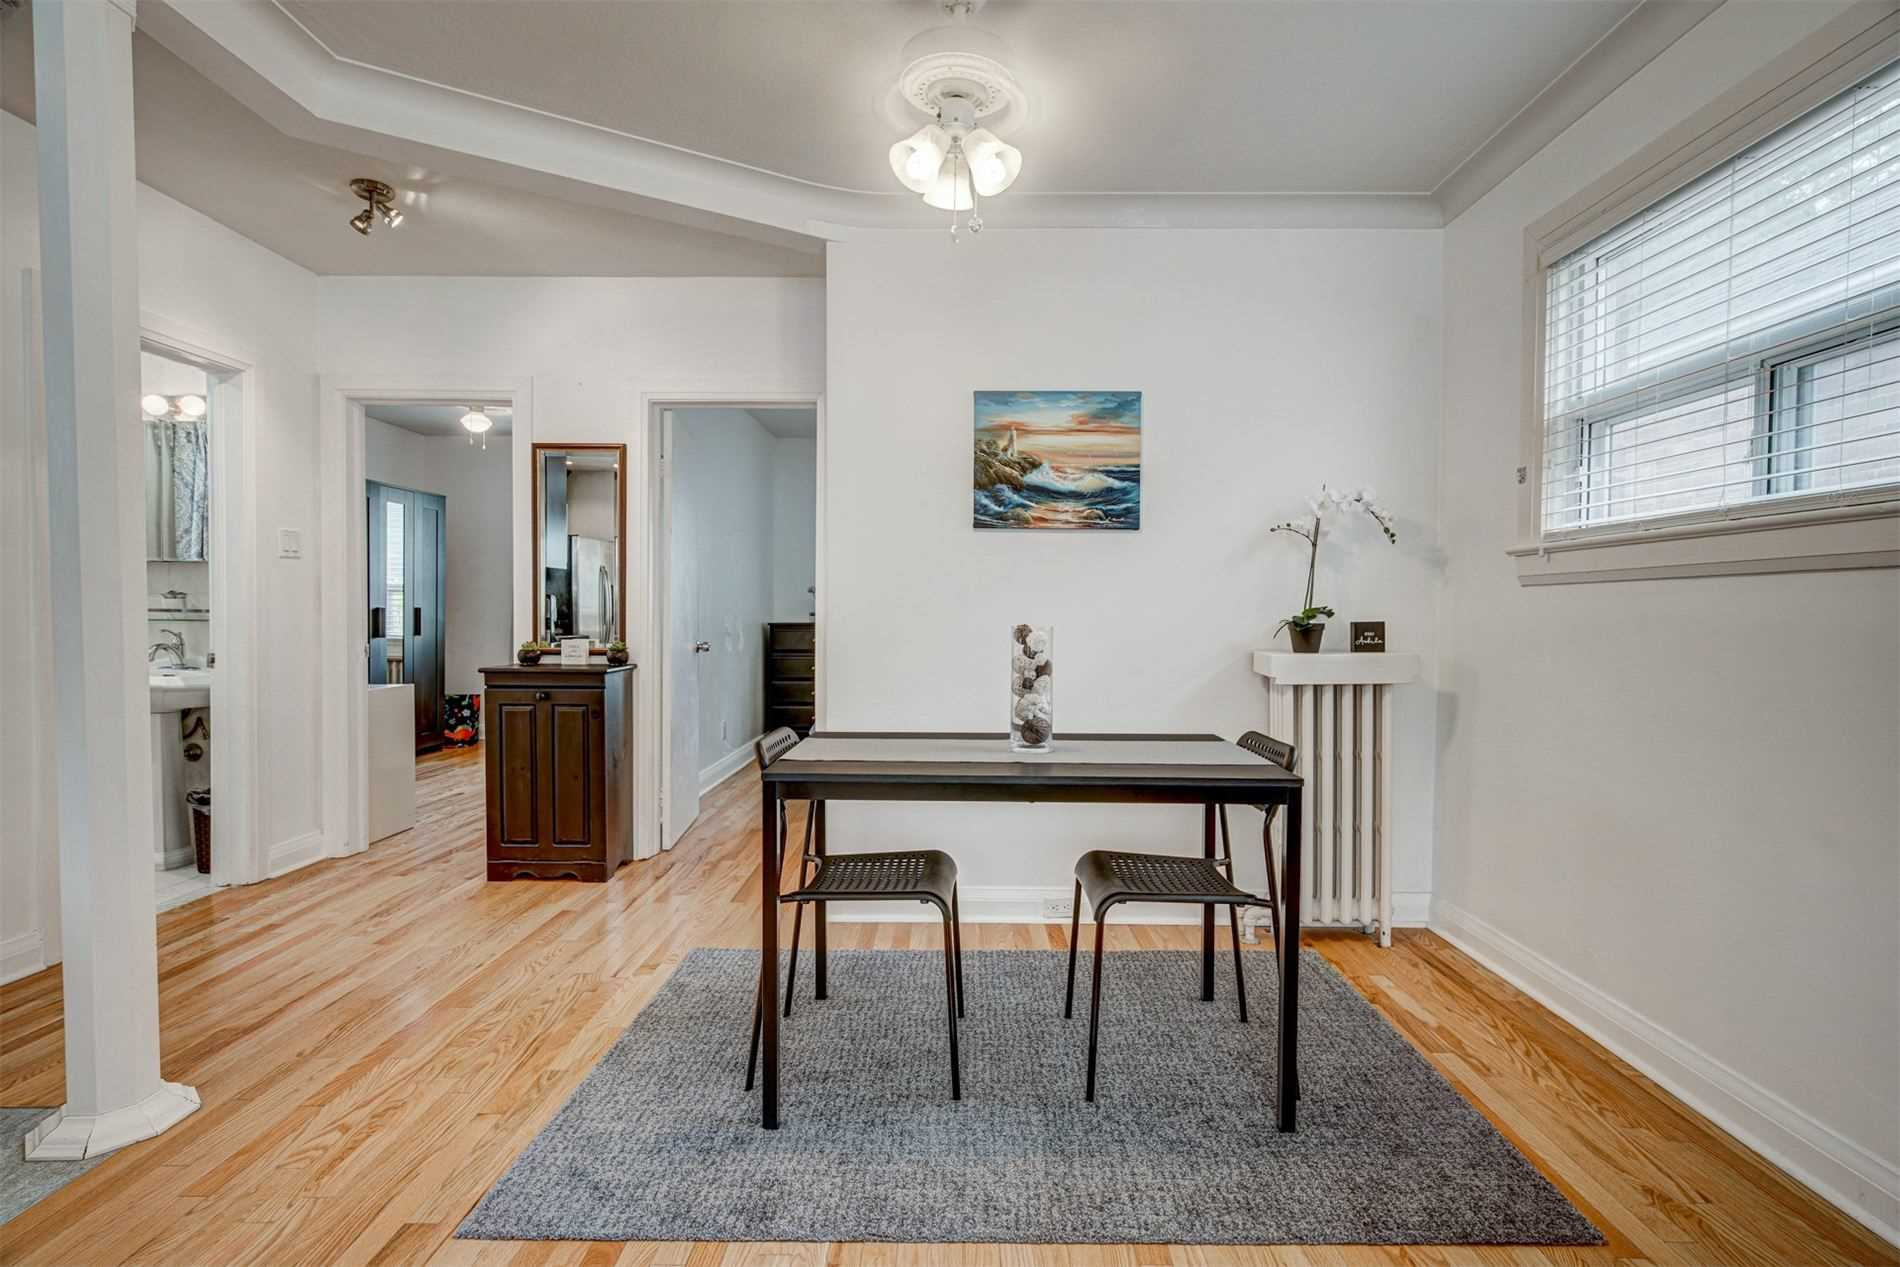 554 Caledonia Rd - Caledonia-Fairbank Detached for sale, 2 Bedrooms (W5305900) - #14